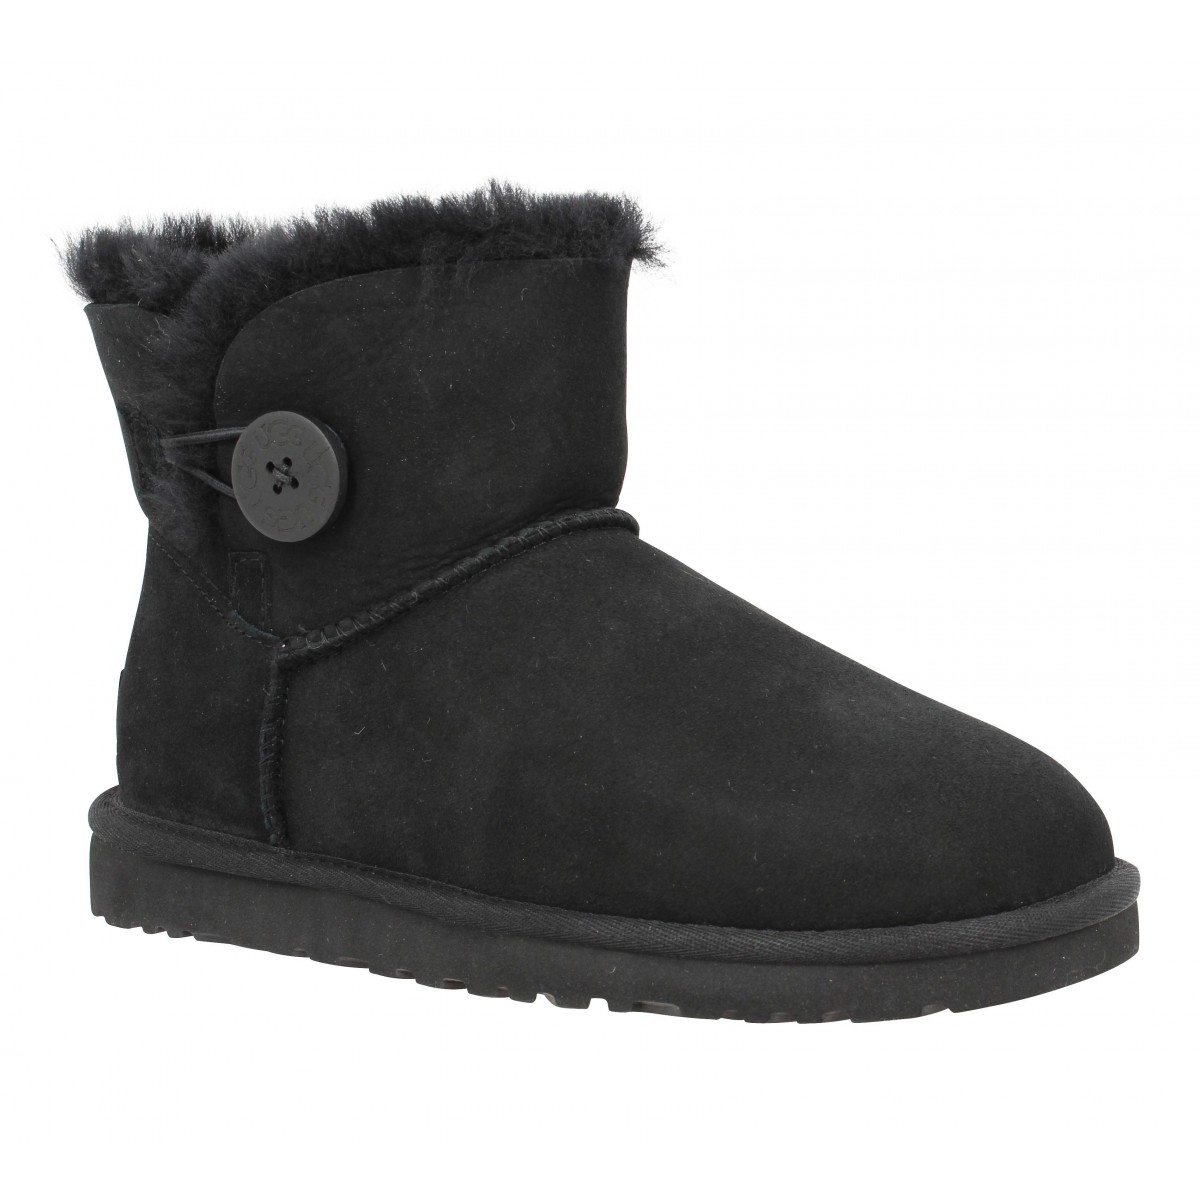 Bottines UGG AUSTRALIA Mini Bailey Button velours Femme Noir